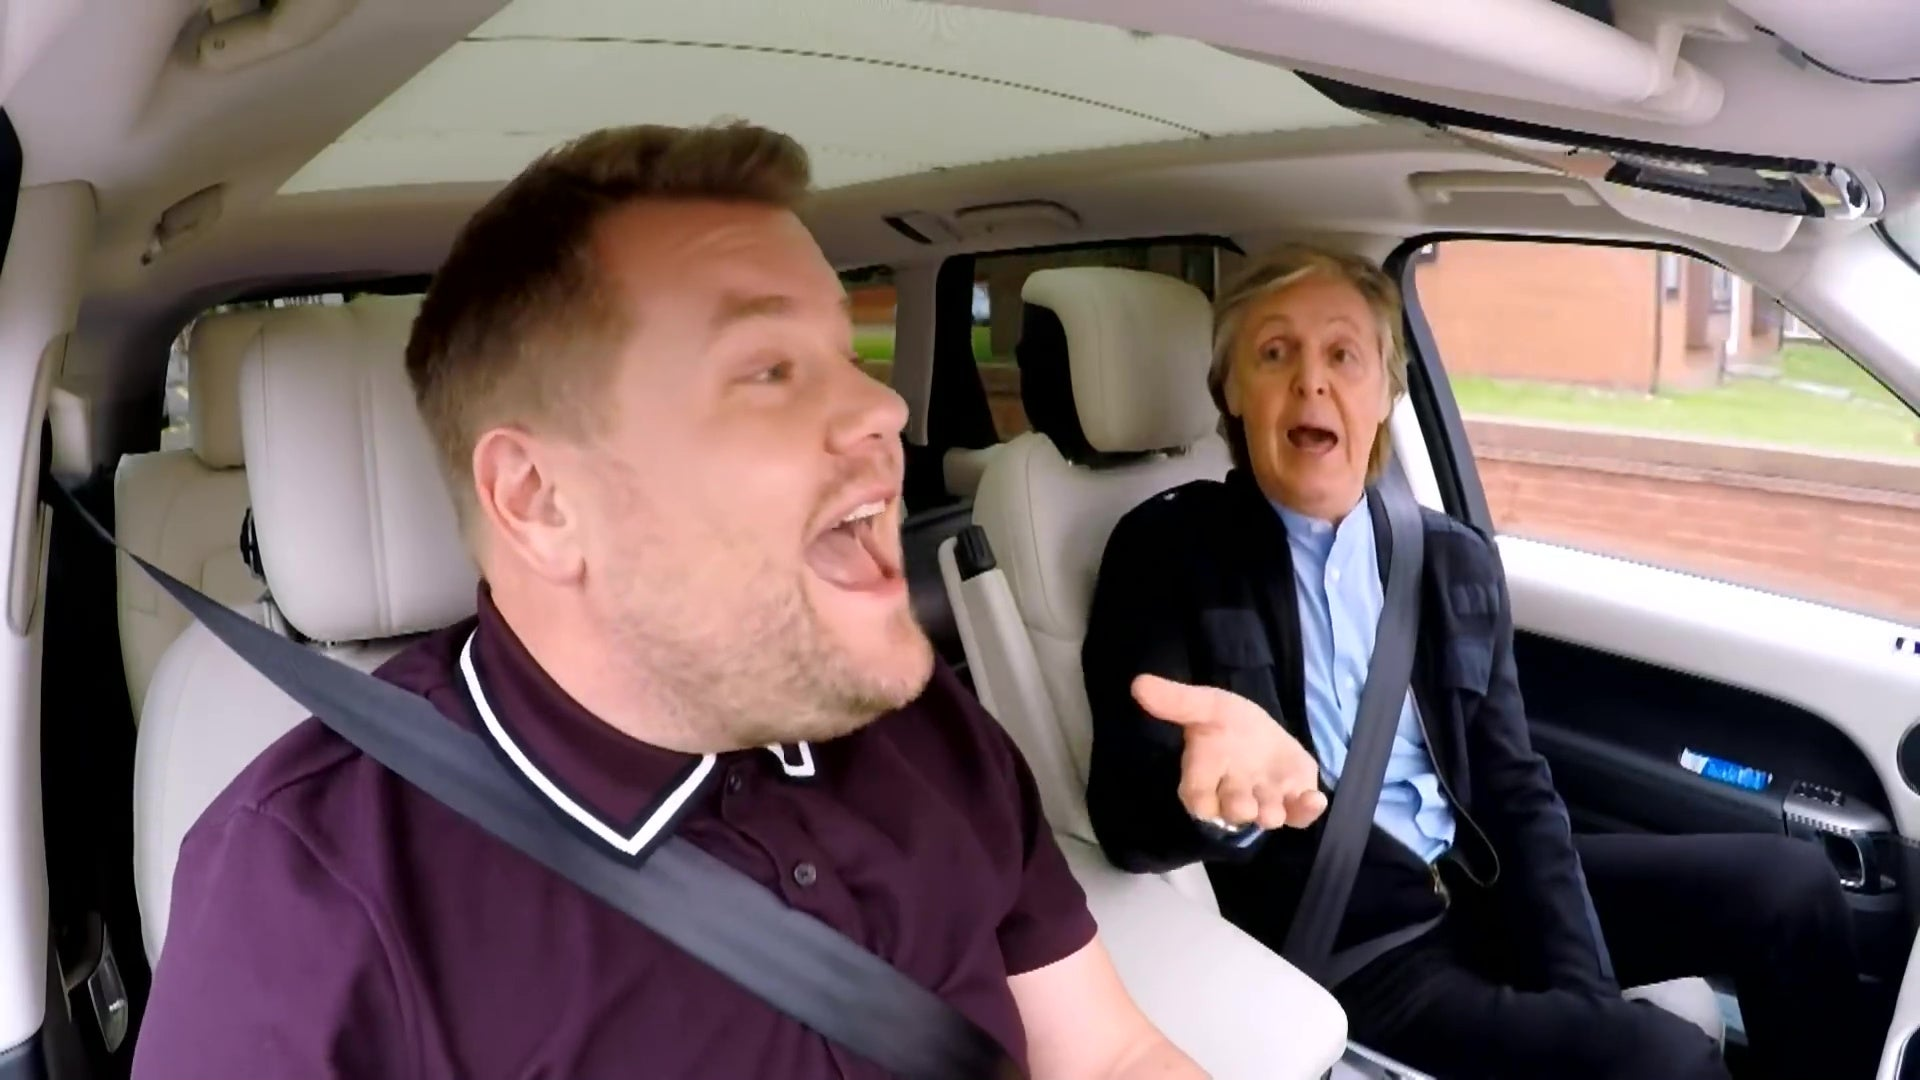 James Corden and Paul McCartney singing in a car.